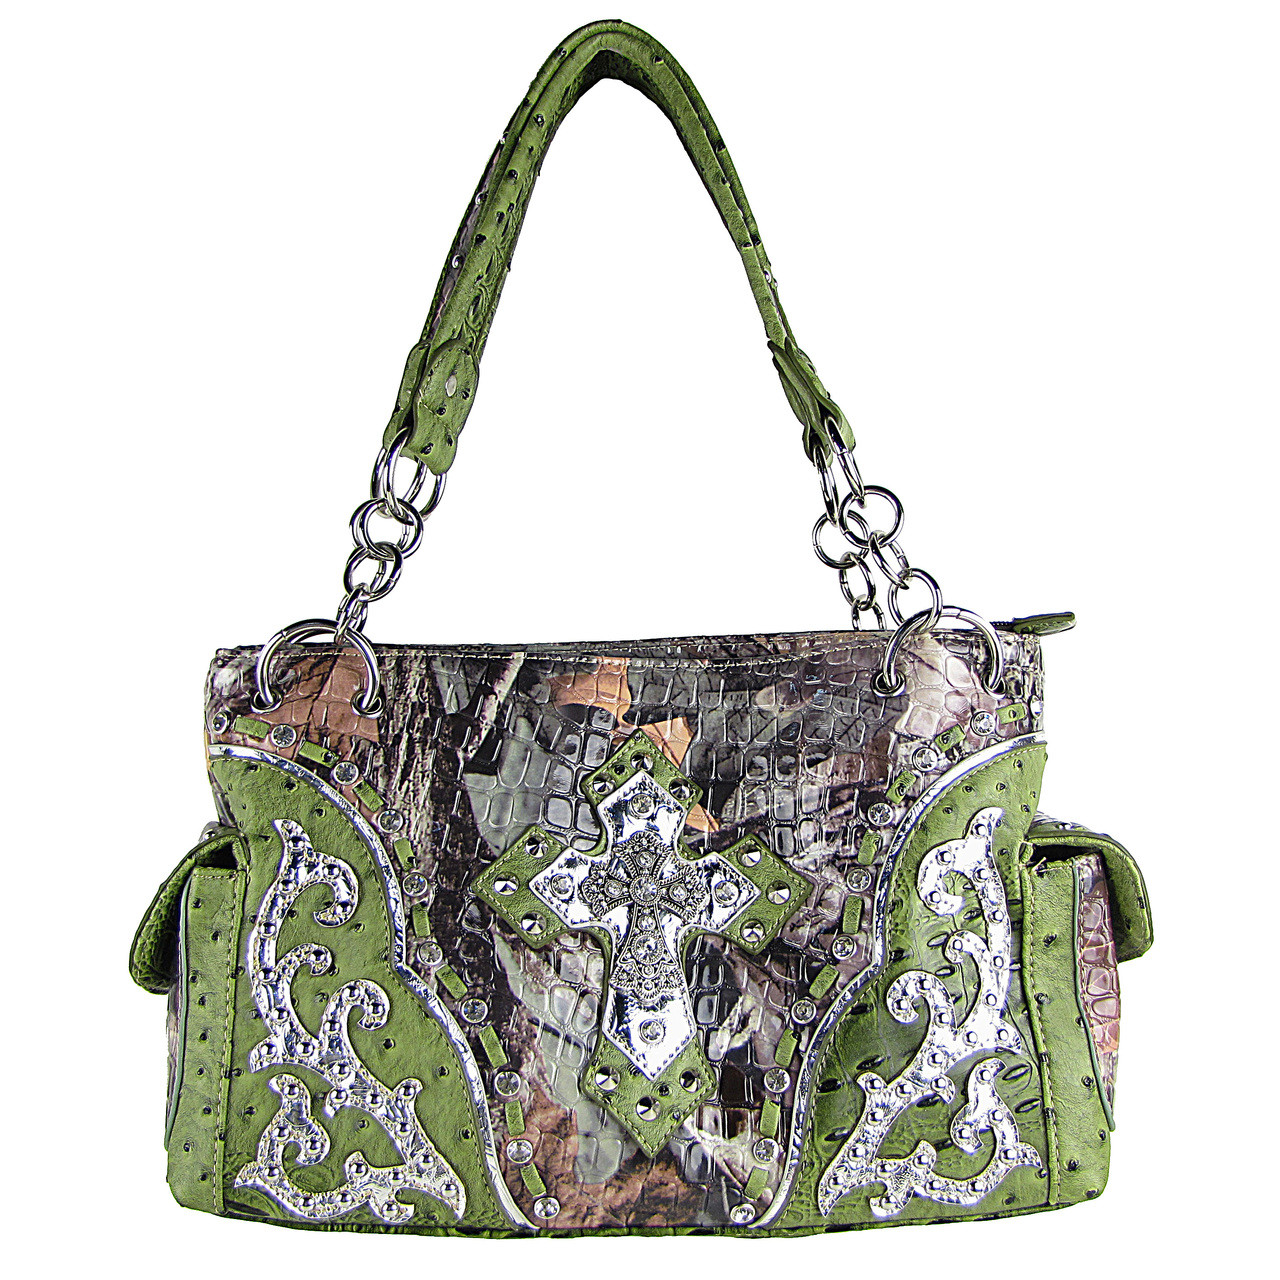 GREEN WESTERN STUDDED RHINESTONE MOSSY CAMO METALLIC CROSS LOOK SHOULDER HANDBAG HB1-HC402-10GRN